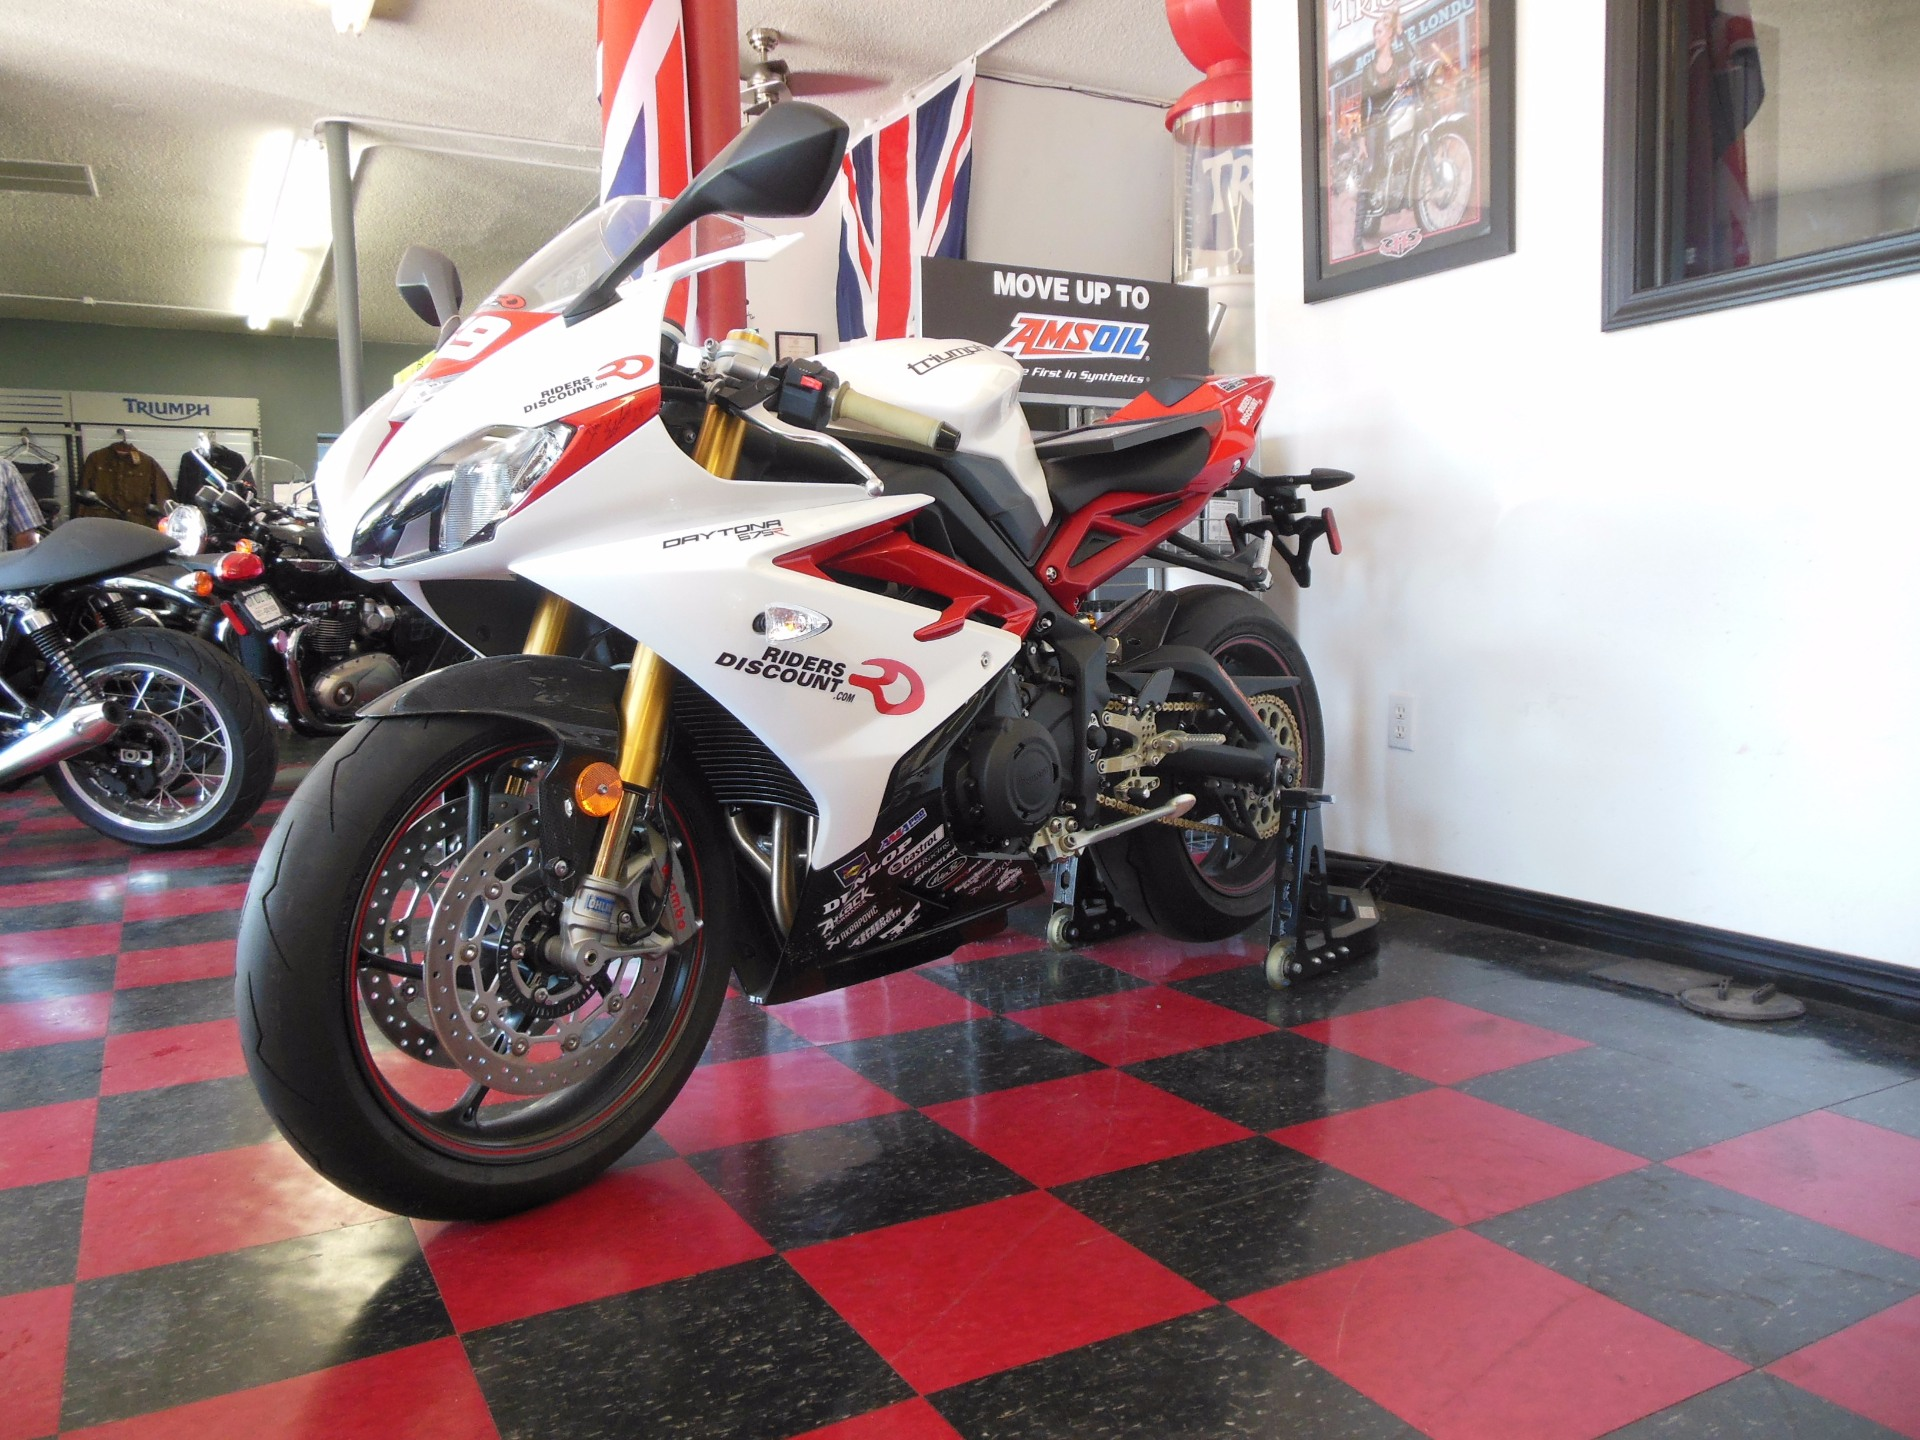 2014 Triumph Daytona 675R Danny Eslick Edition for sale 9538